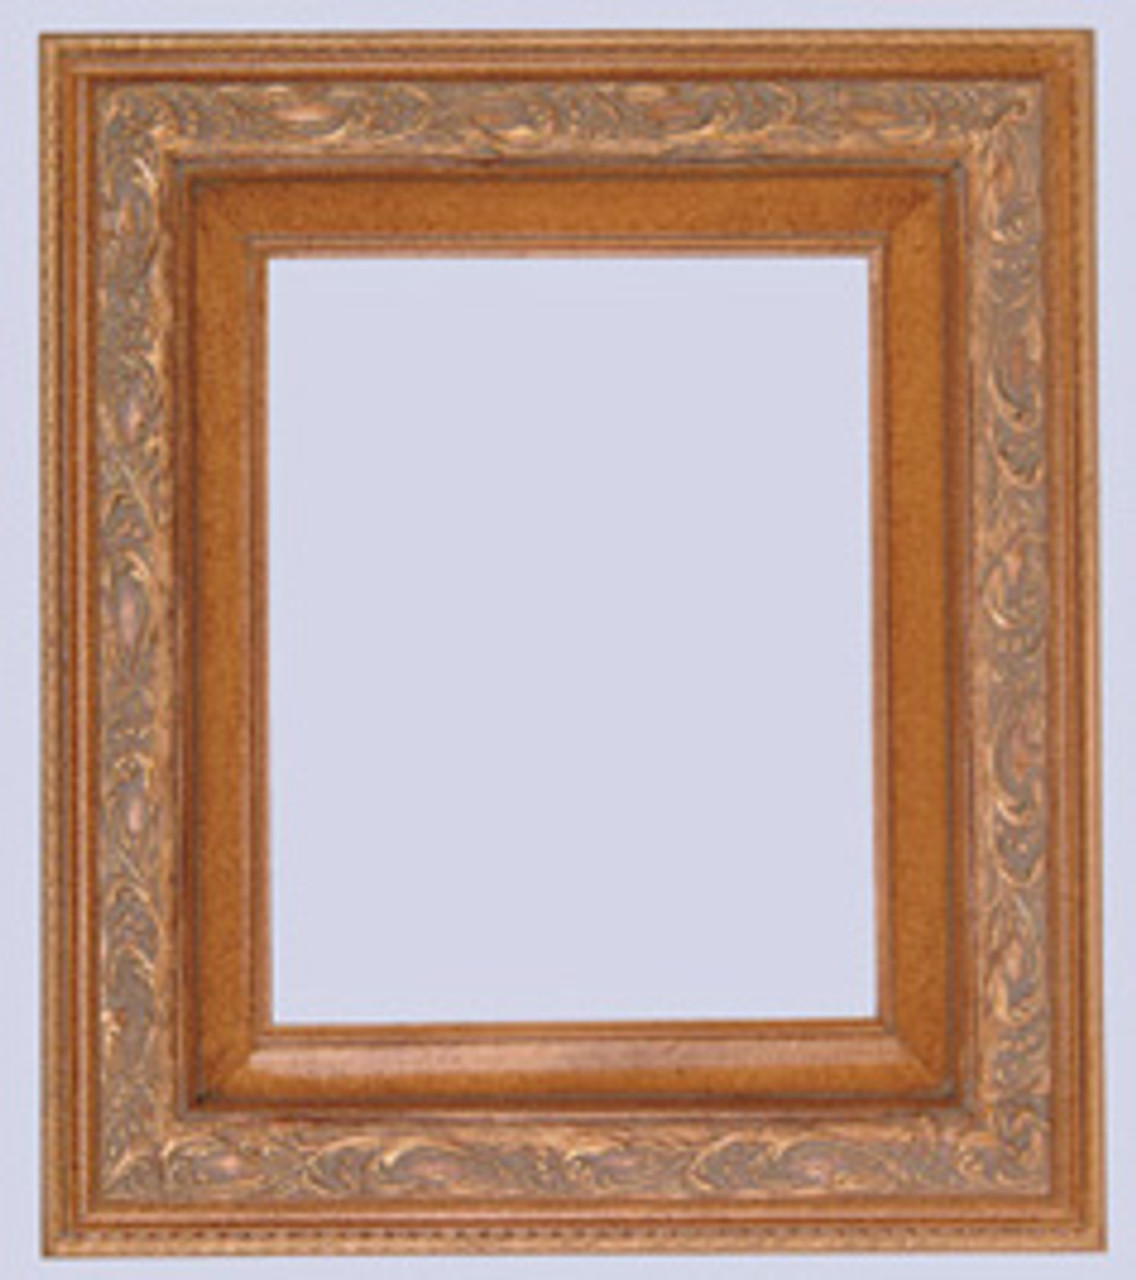 7x7 Picture Frame